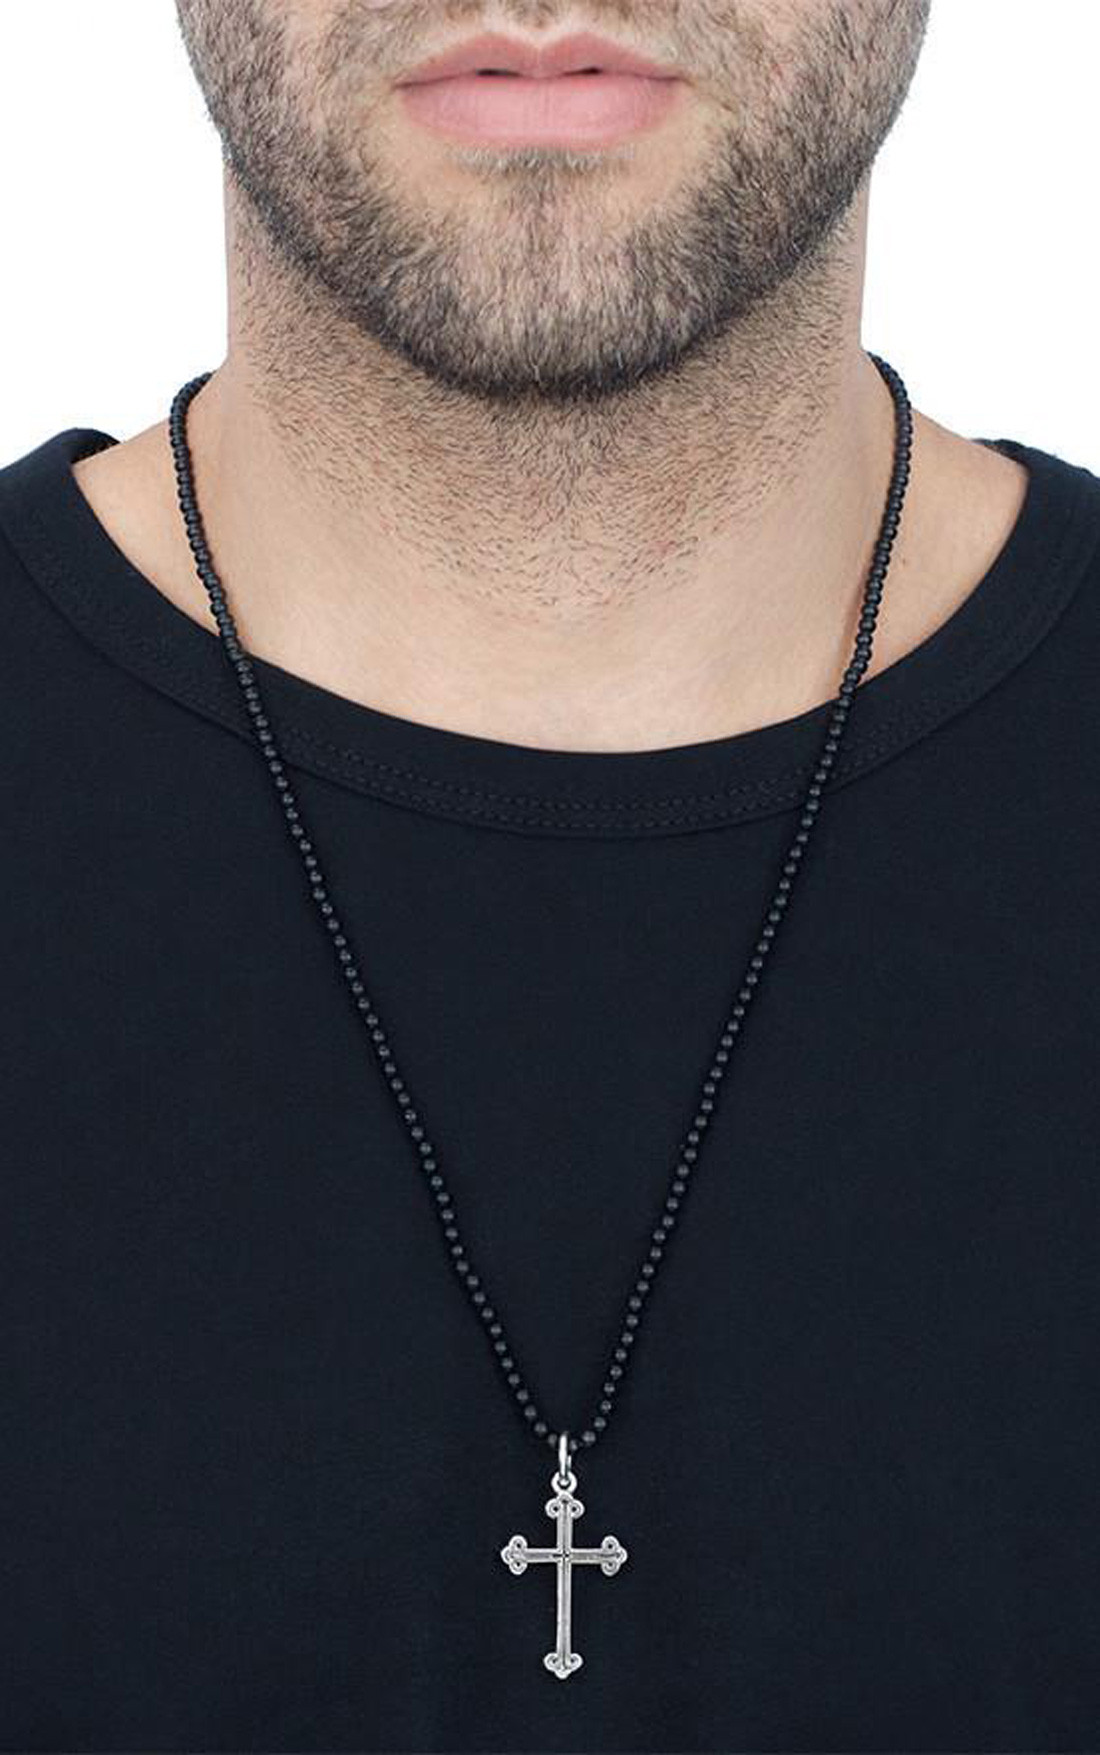 King Baby - Traditional Cross on Onyx Bead Necklace (K56-5091)